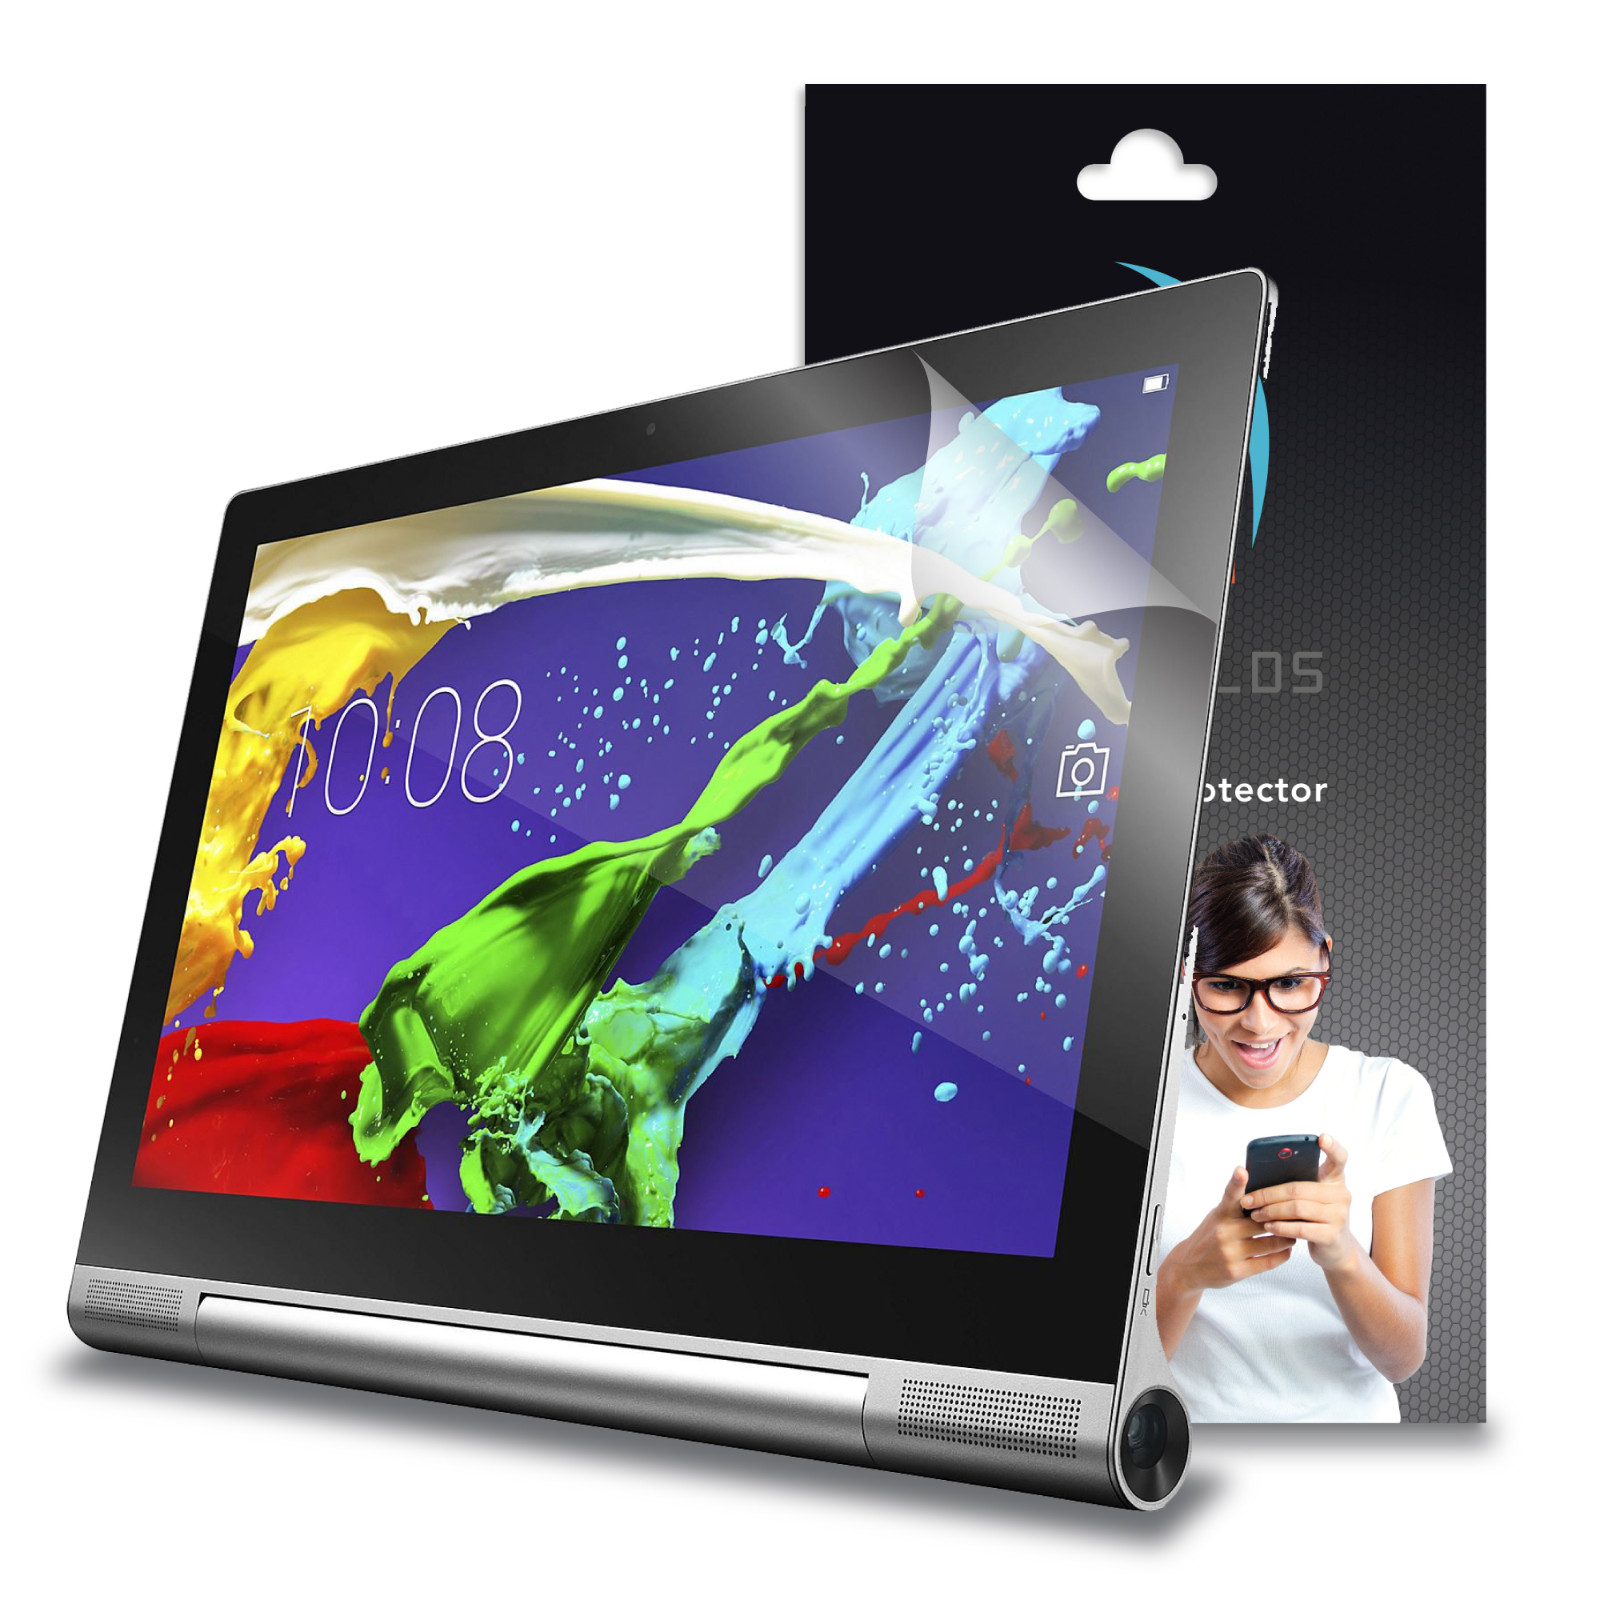 XShields© High Definition (HD+) Screen Protectors for Lenovo Yoga tablet 2 Pro 13.3 (Maximum Clarity) Super Easy Installation [4-Pack] Lifetime Warranty, Advanced Touchscreen Accuracy